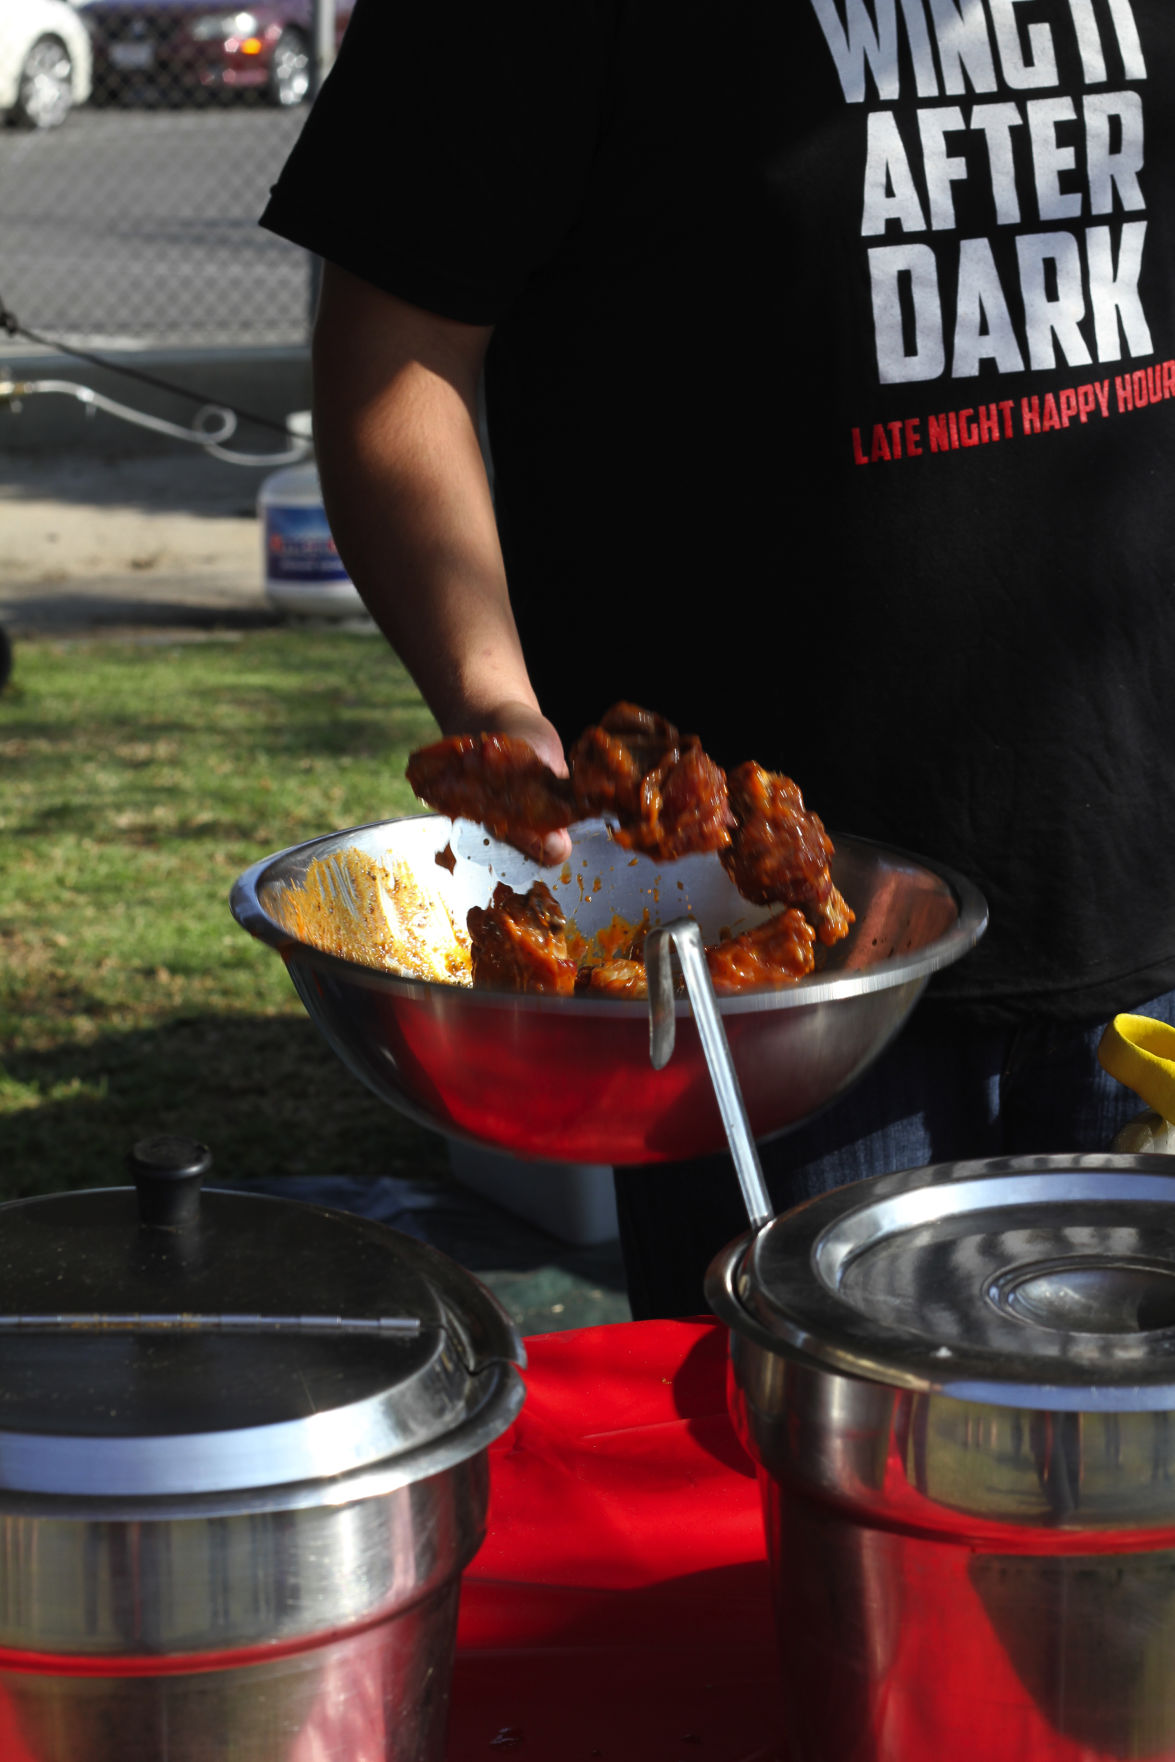 The Dish Whats Shakin Bacon Festival Returns With New Features Fruit 18 For Adult Untuk Dewasa Veterans Day Deals On Tap Food